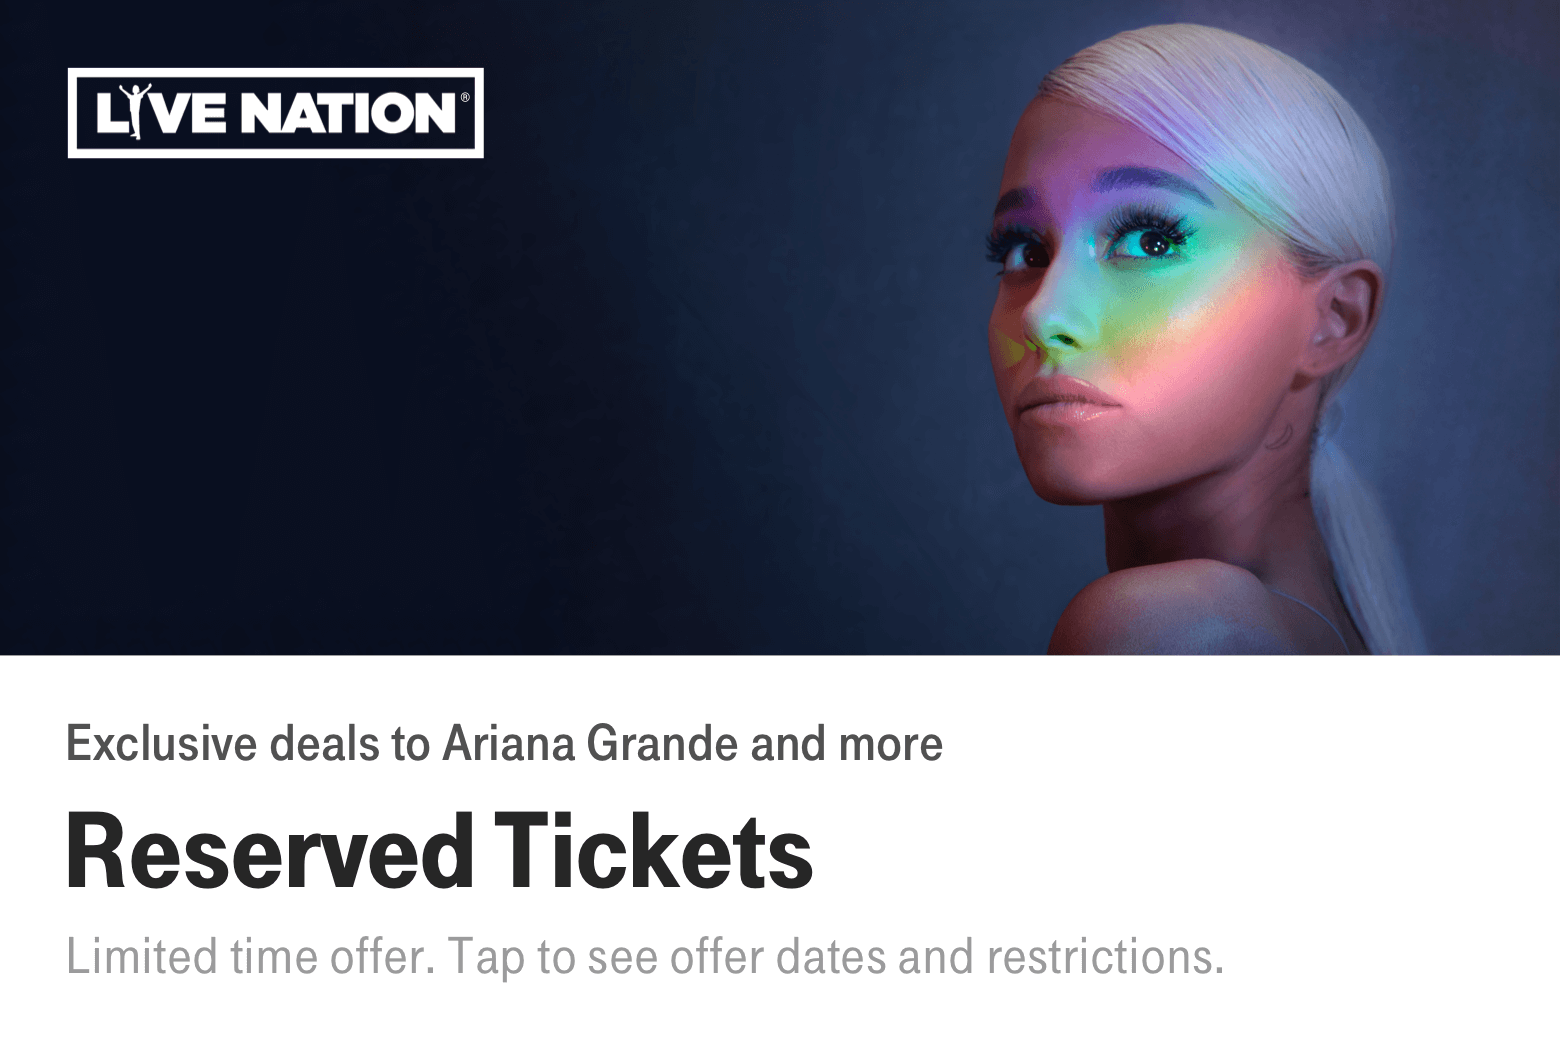 Live Nation. Exclusive deals to Ariana Grande and more. Reserved Tickets. Limited time offer. Tap to see offer dates and restrictions.